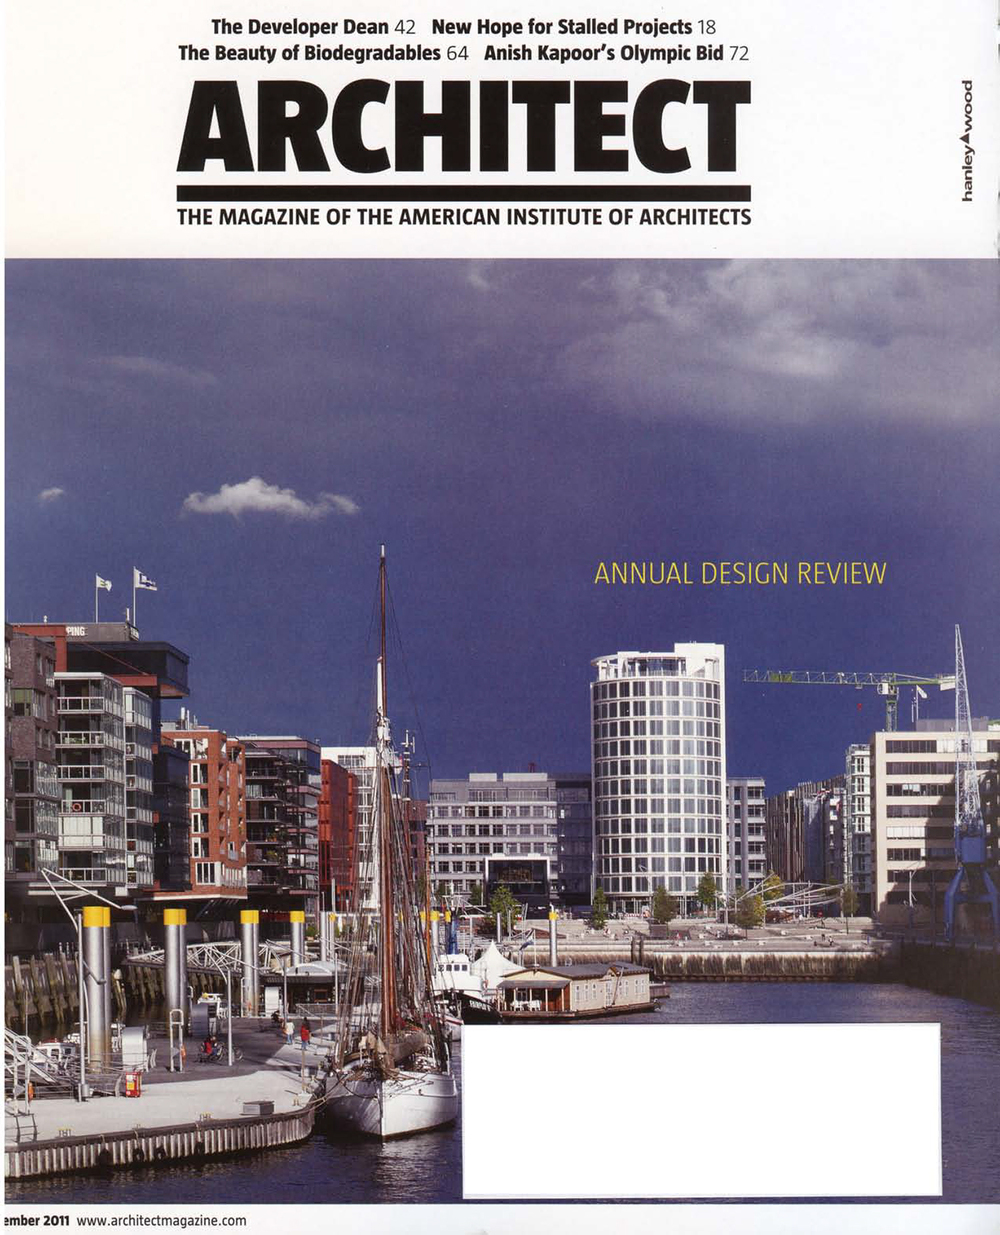 2011-12-architect - large.jpg